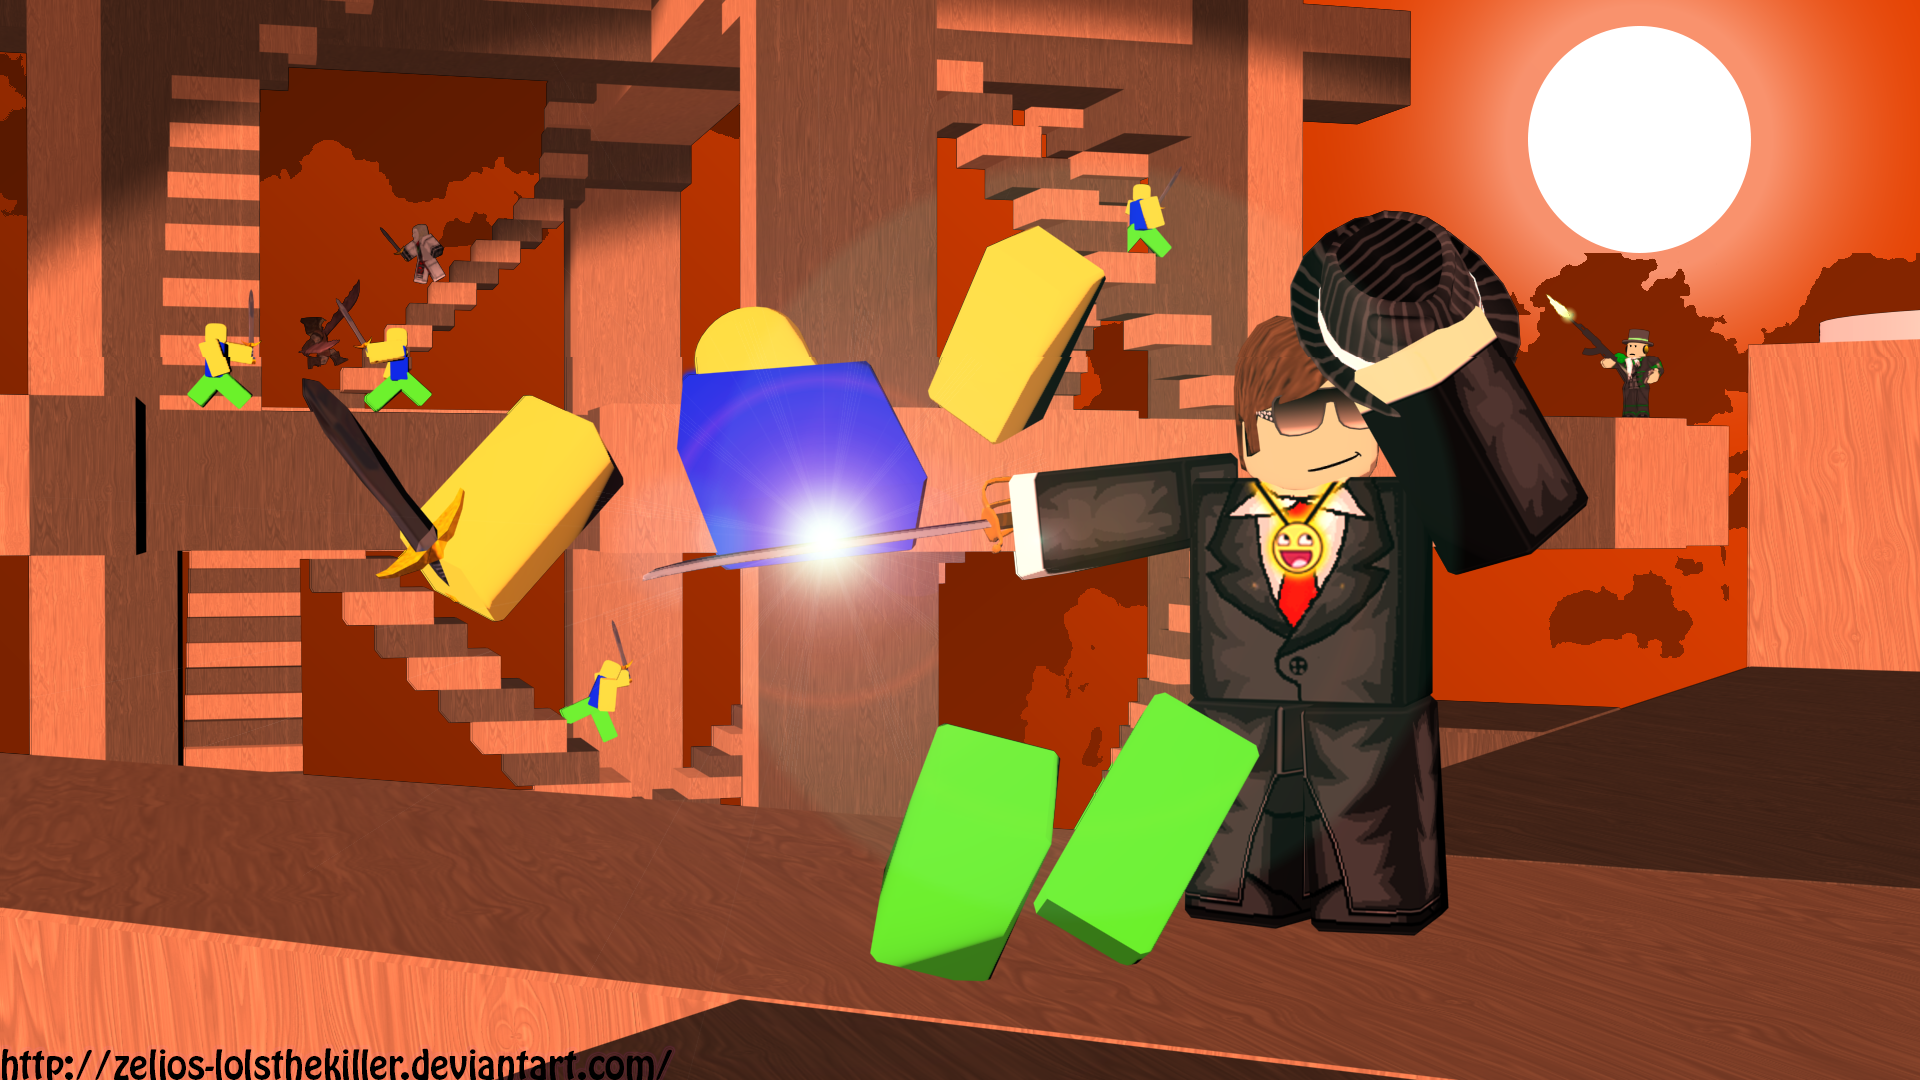 Free download Roblox Wallpaper Guttcgutiotyus request by [1920x1080